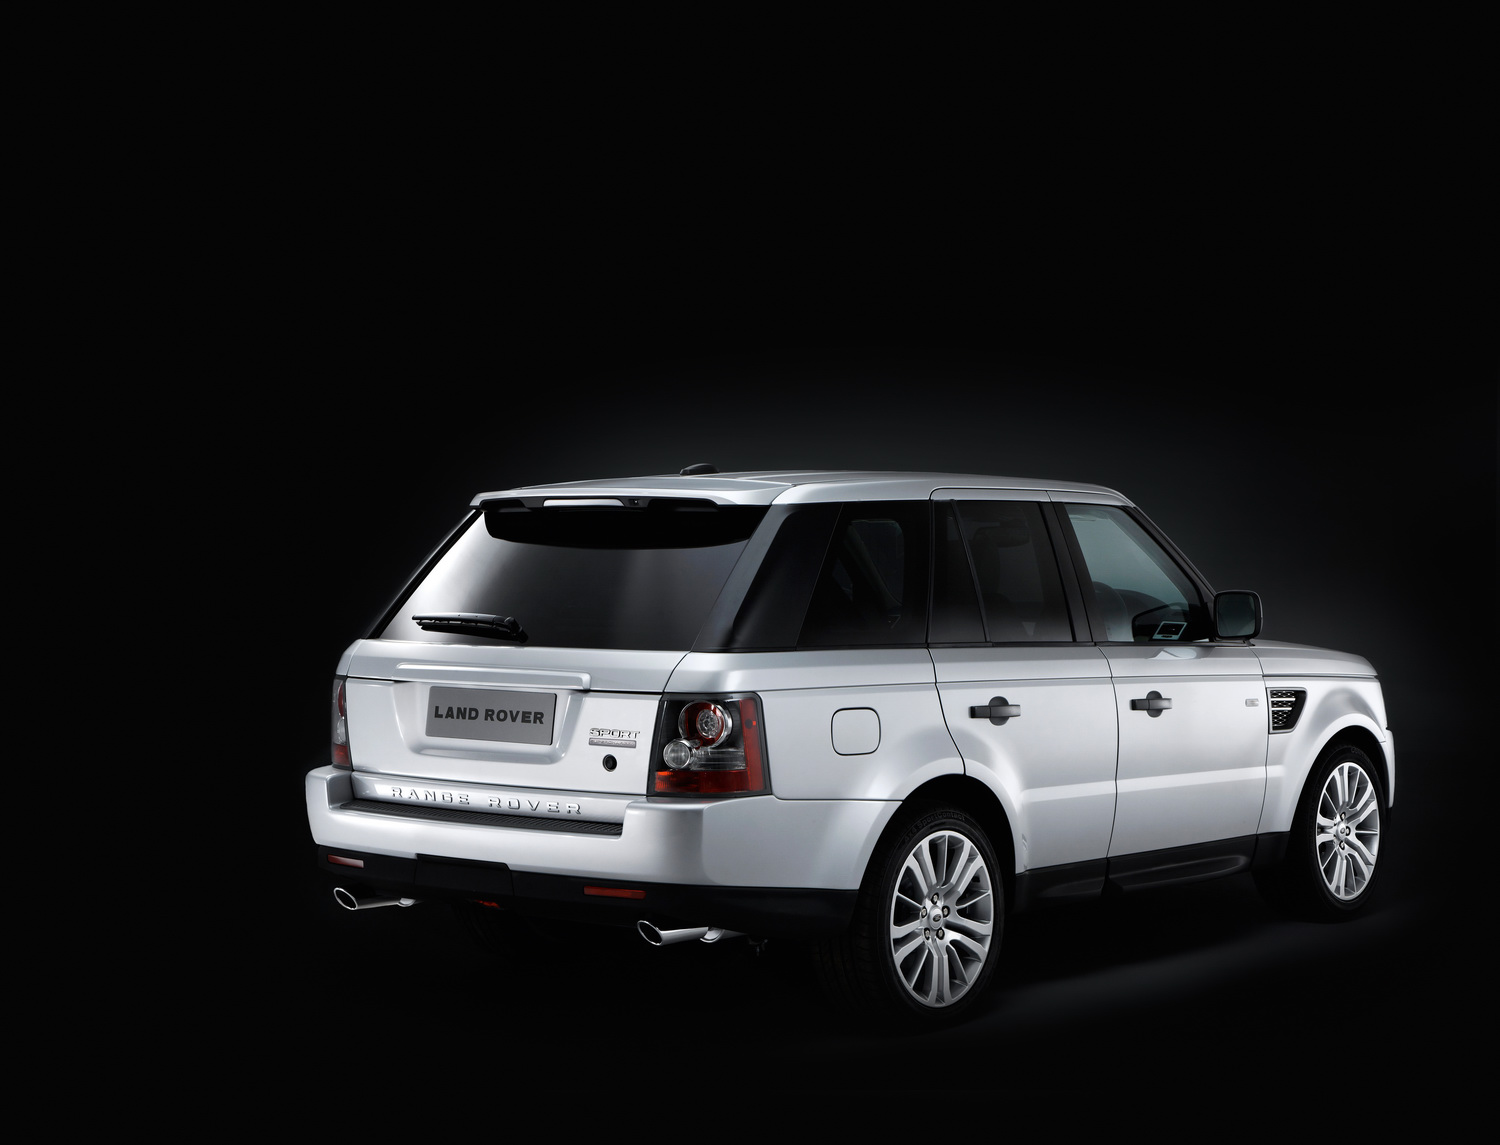 2010 Range Rover Sport 16 Facelifted Range Rover Sport gets new V6 Diesel and V8 Petrol units